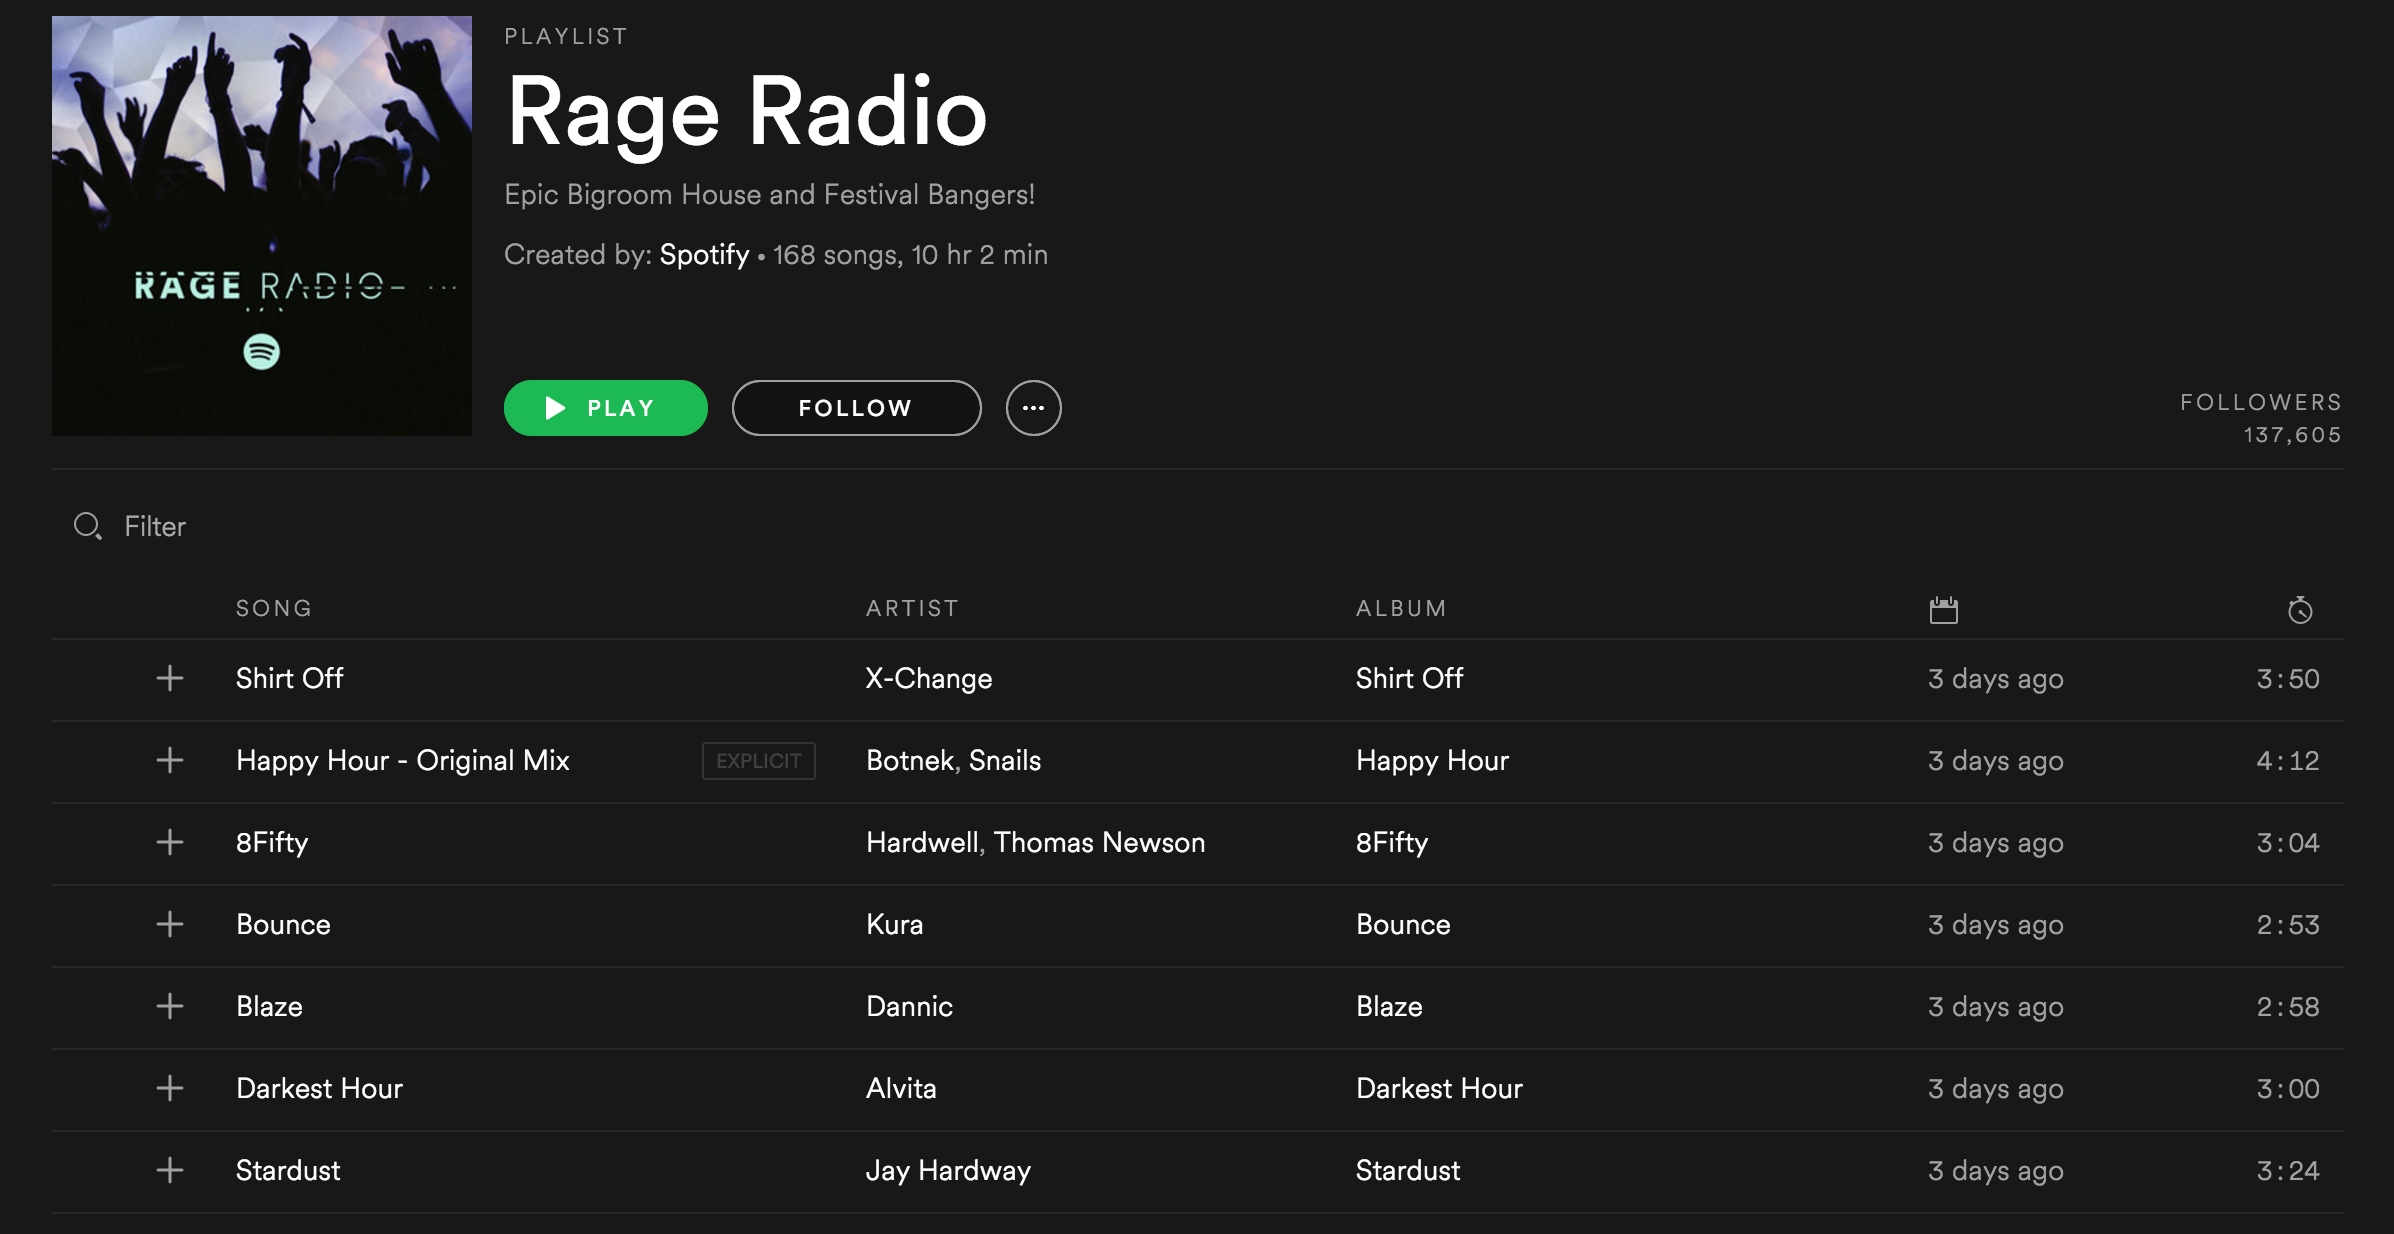 Screenshot 2016-06-16 09.27.11 Shirt Off Spotify Rage Radio